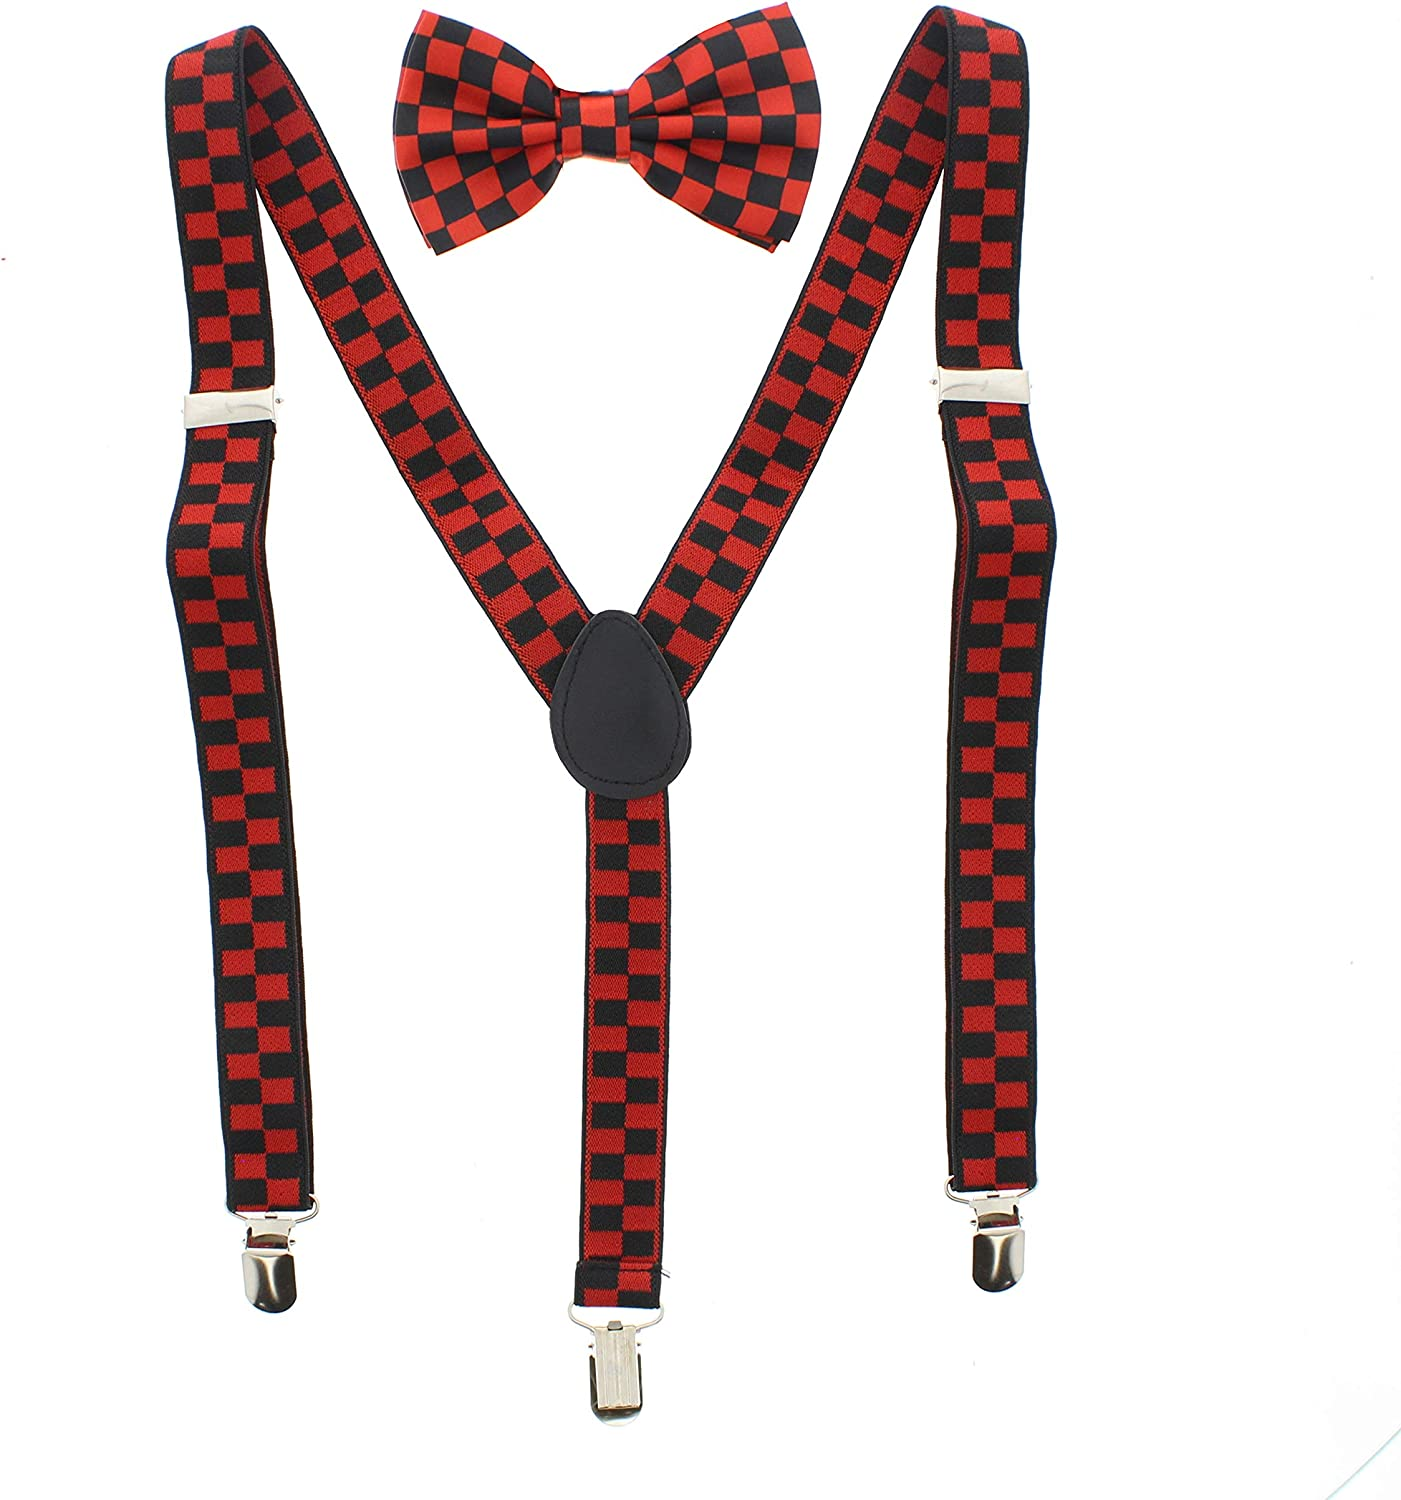 Zac's Alter Ego Men's Matching Checkered Suspenders & Pre-Tied Bow Tie